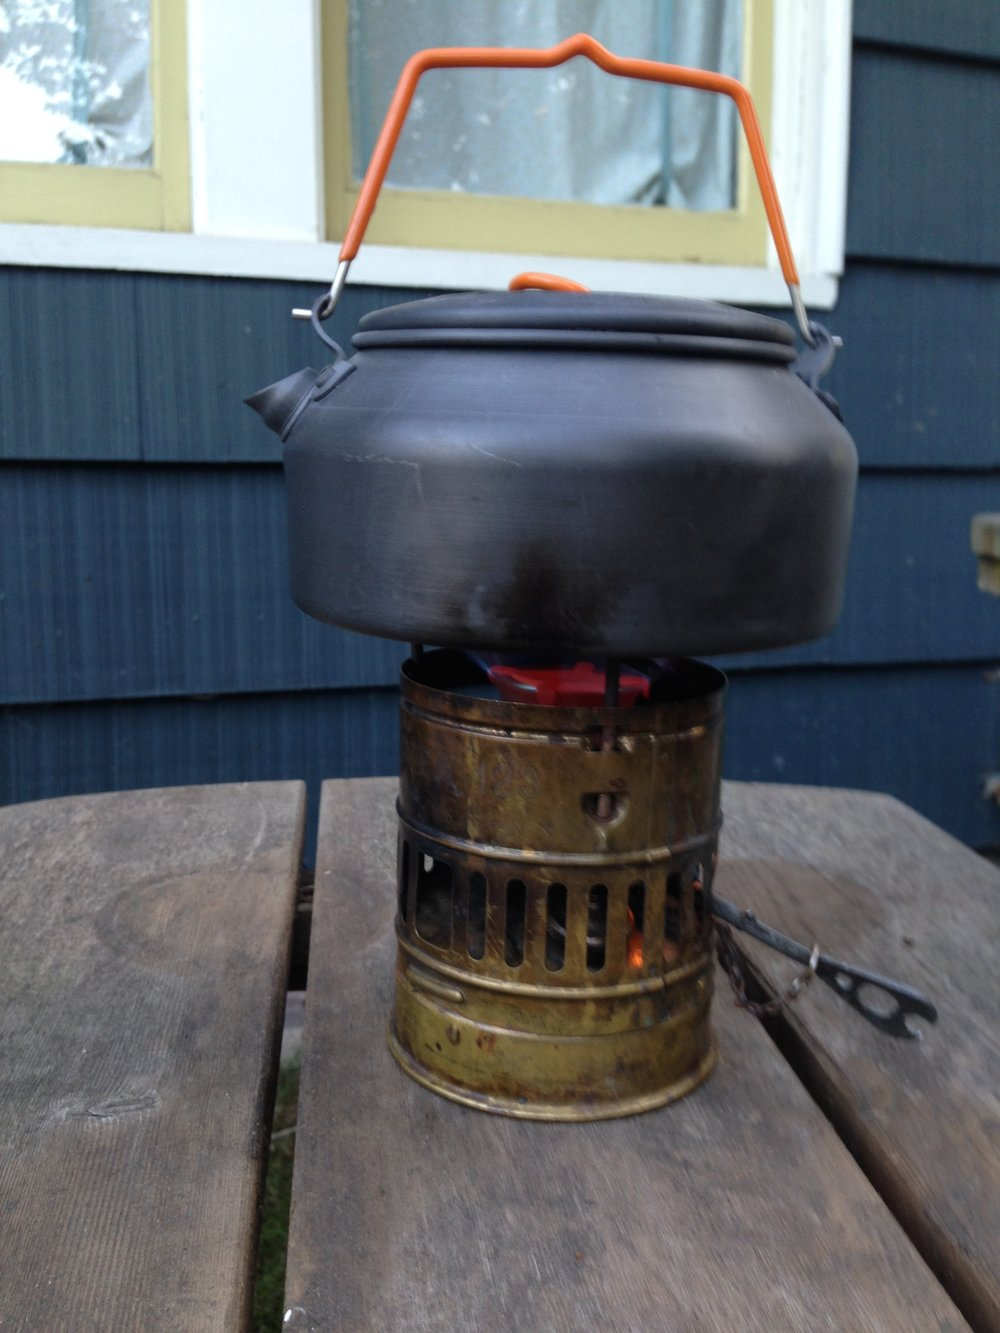 Testing out the Svea stove.